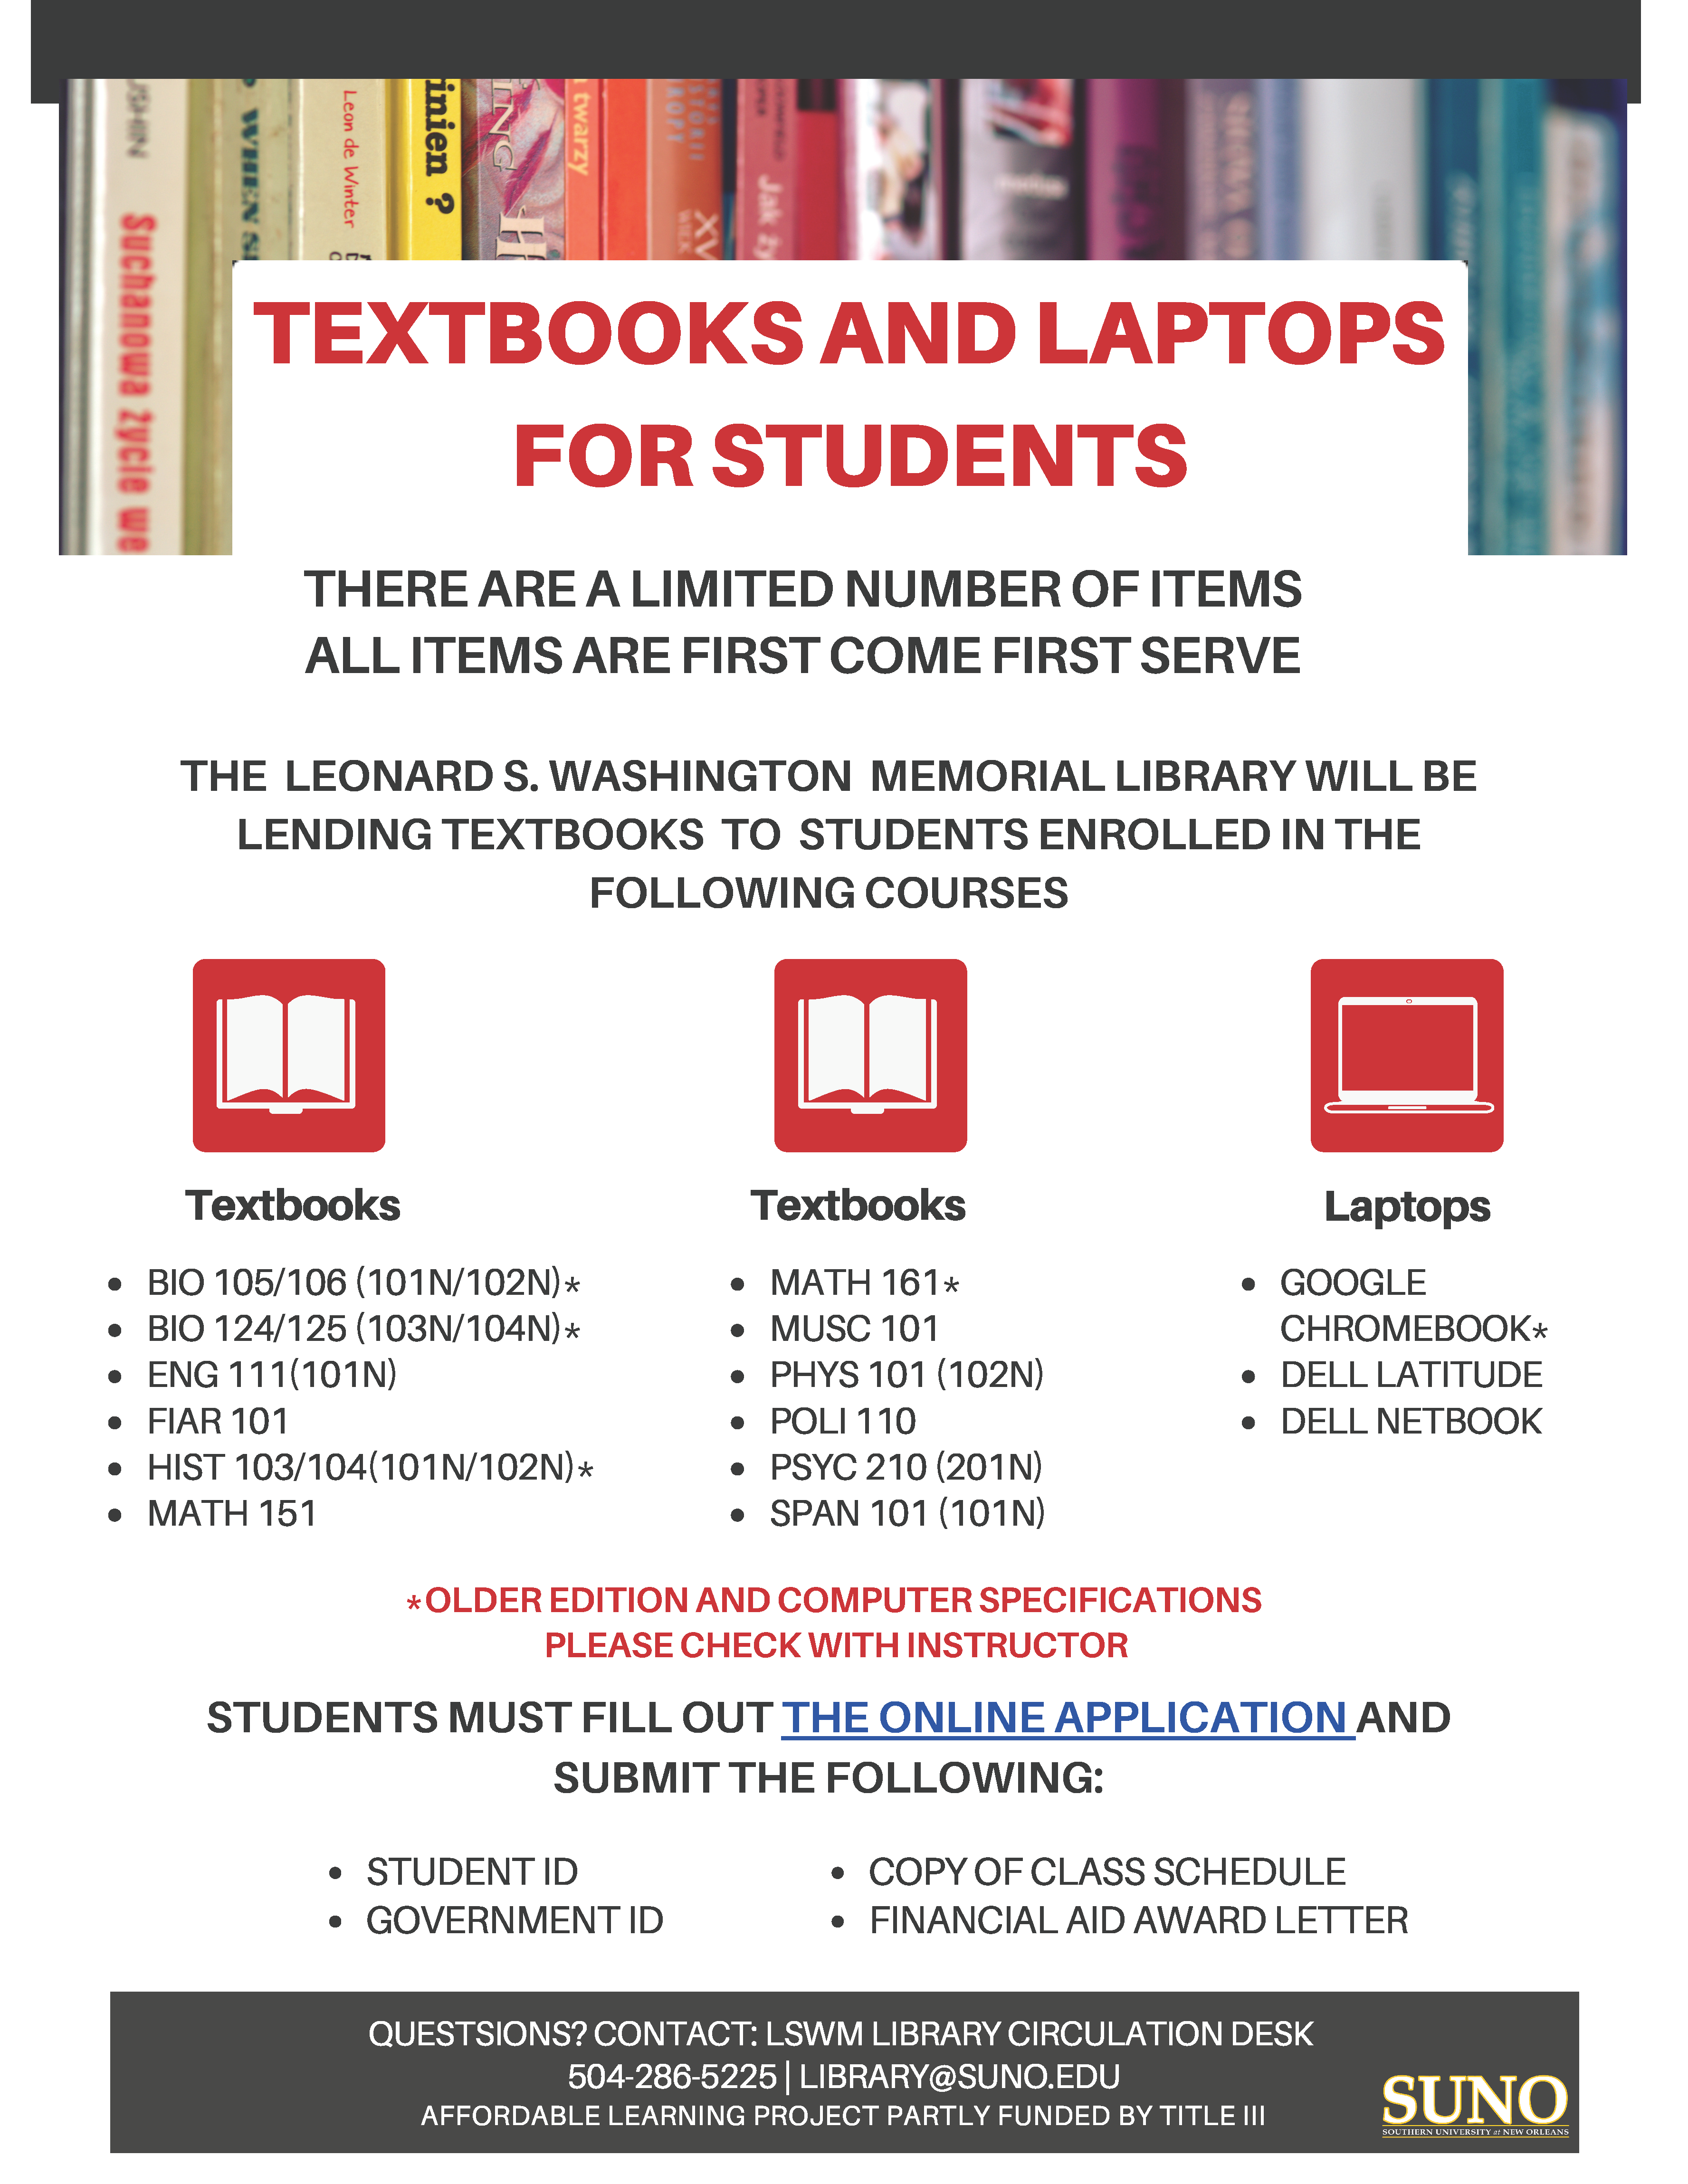 Textbook and Laptops for Students